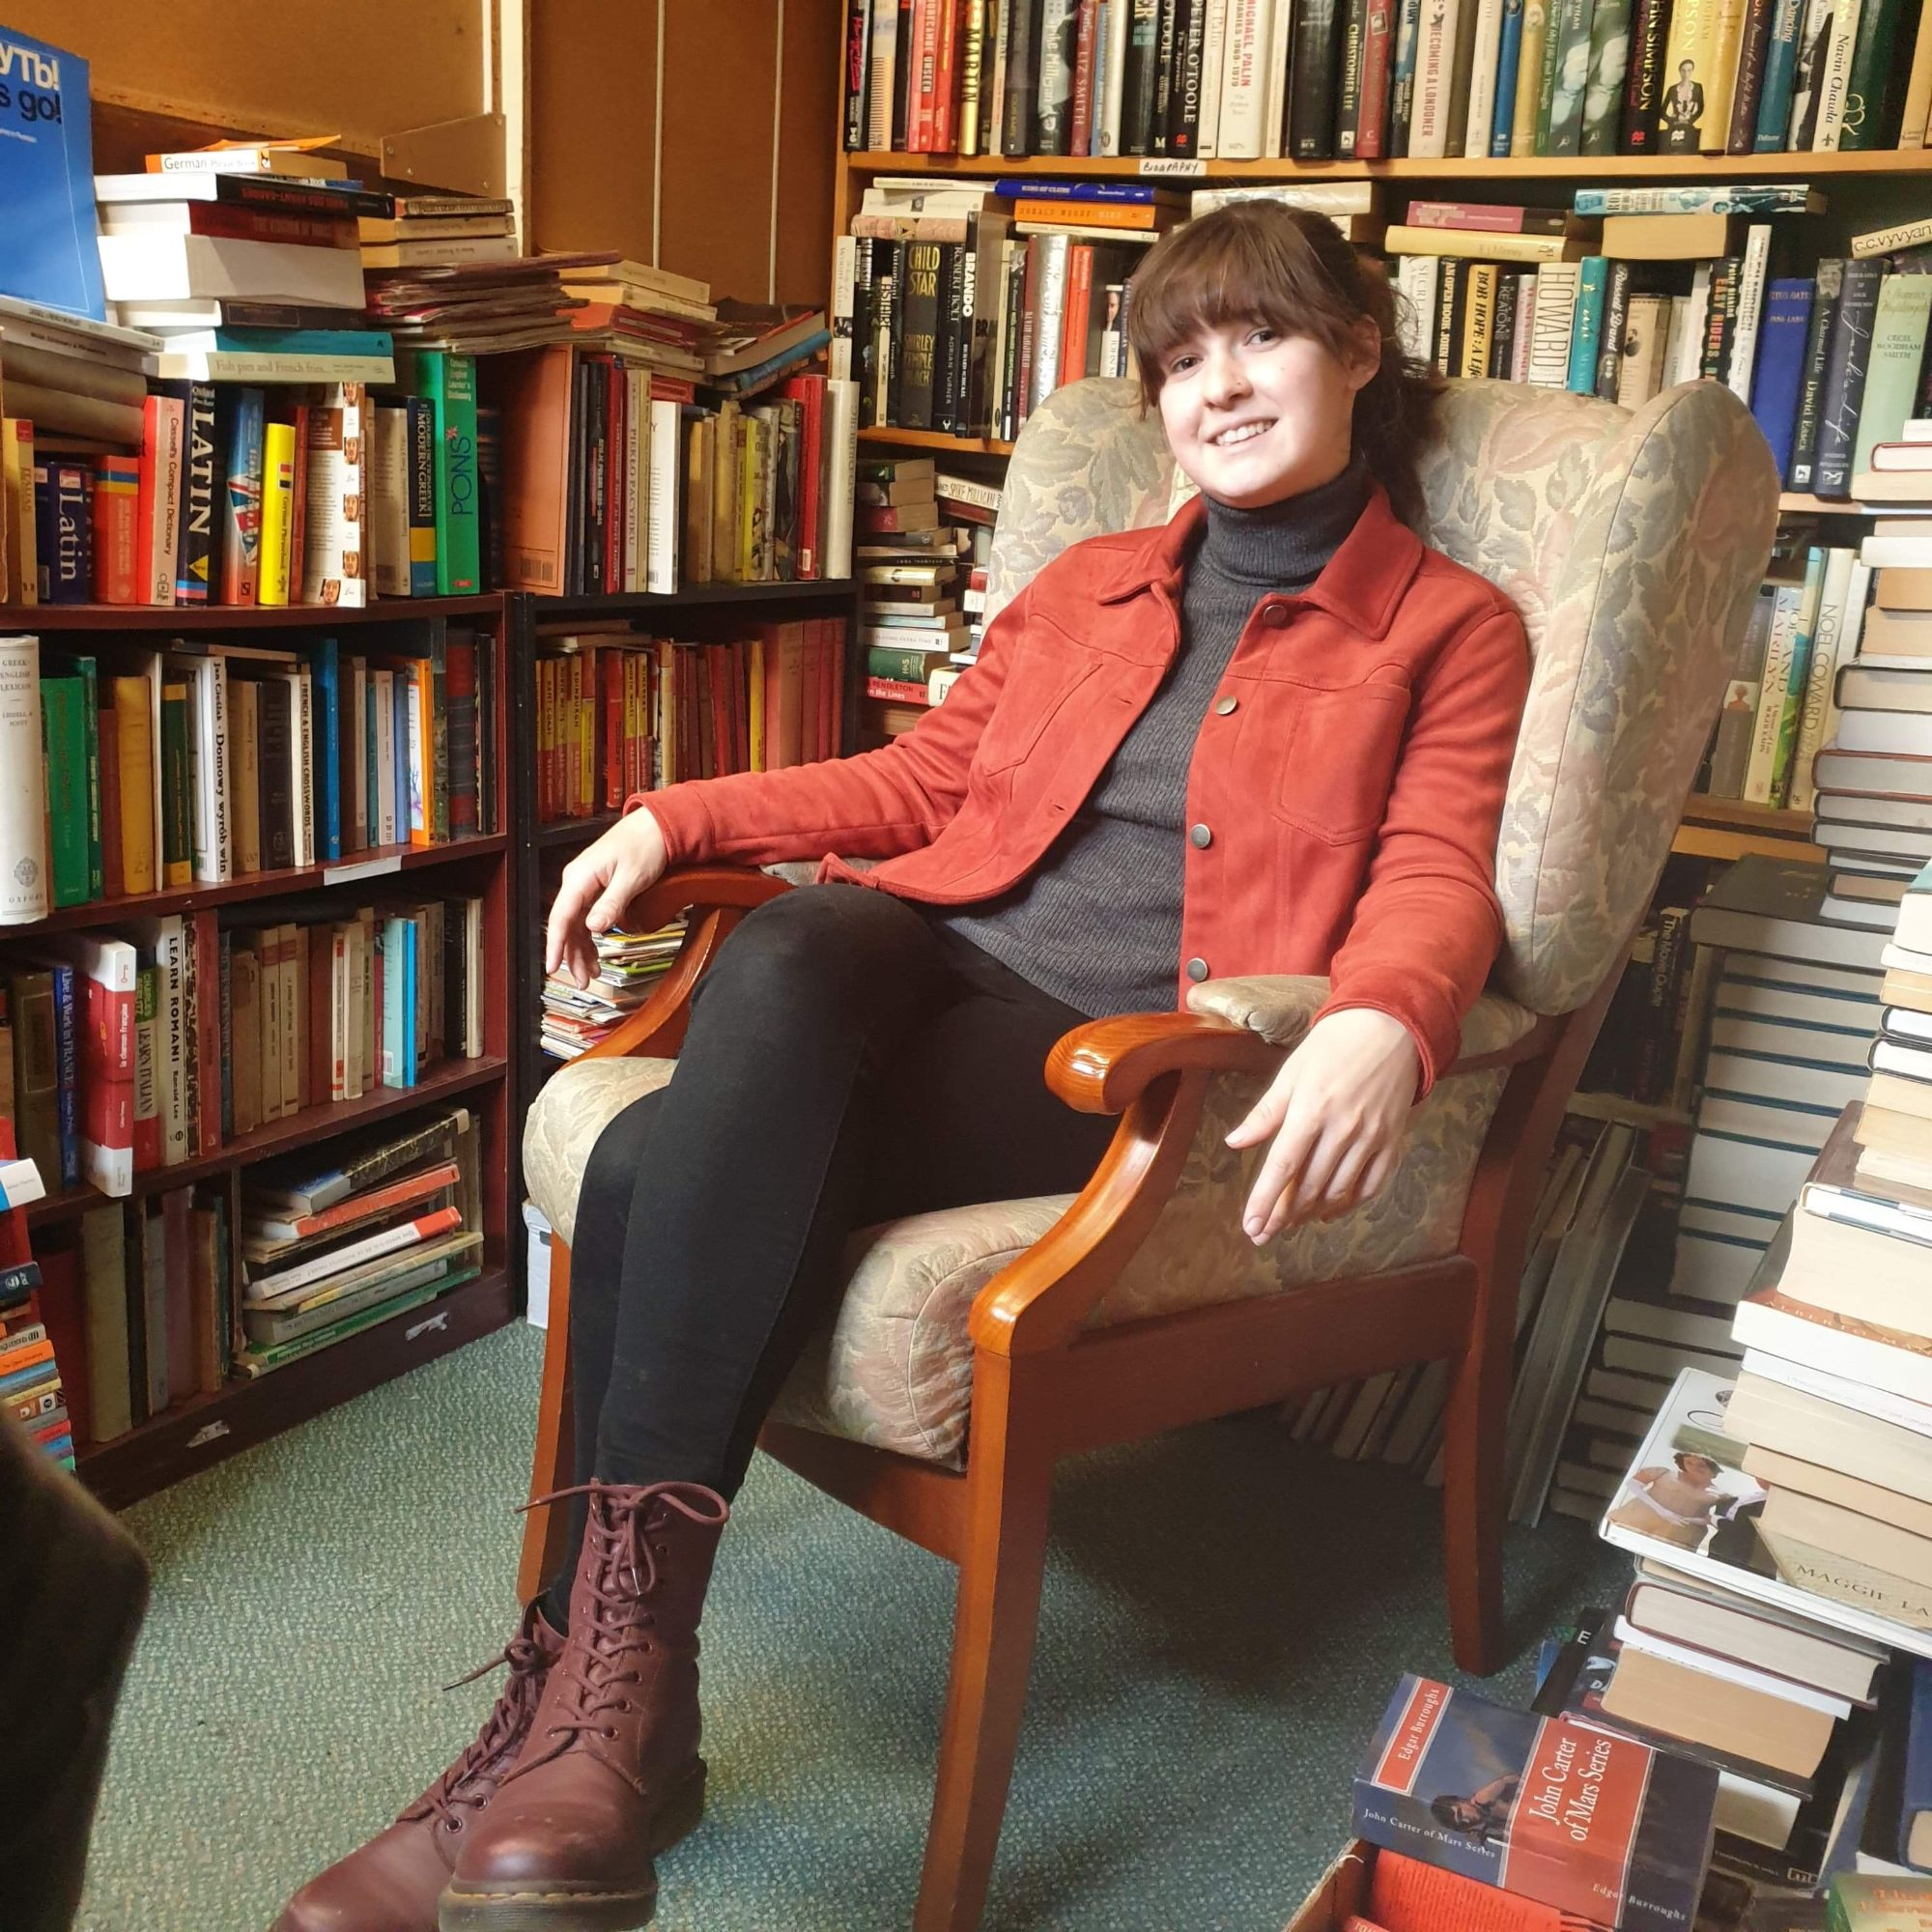 Rachel sits on an armchair surrounded by books